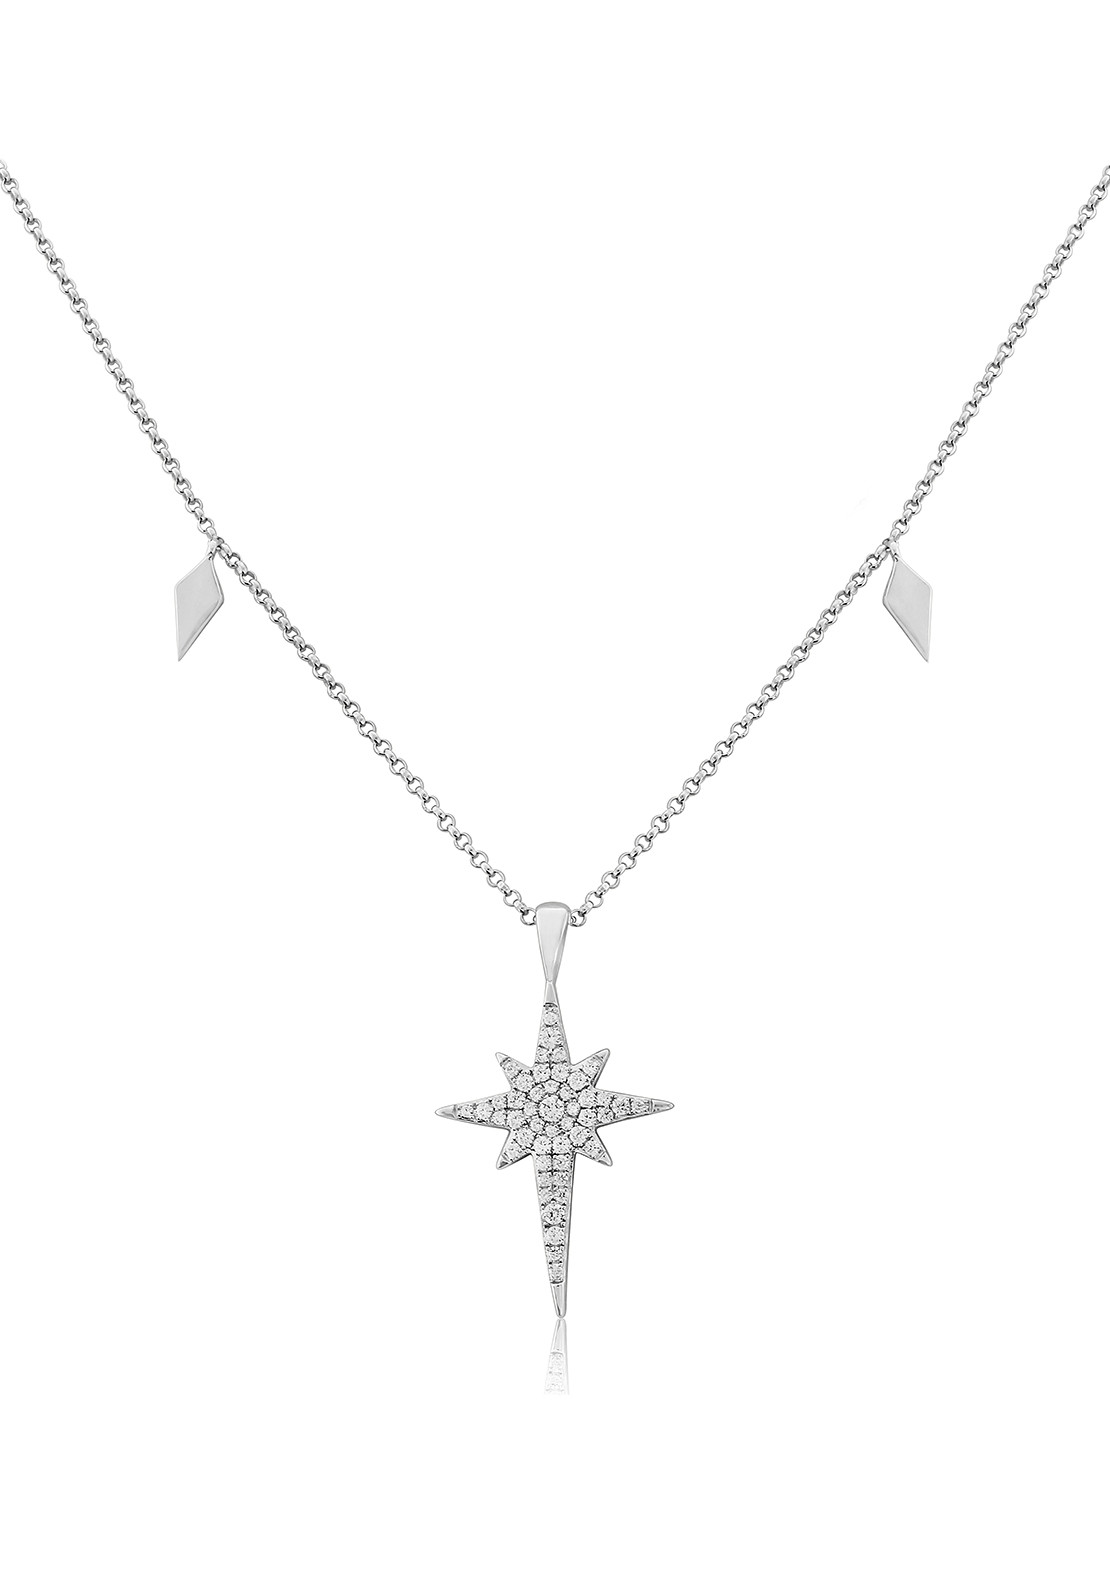 Waterford Crystal Star Pendant Necklace, Silver